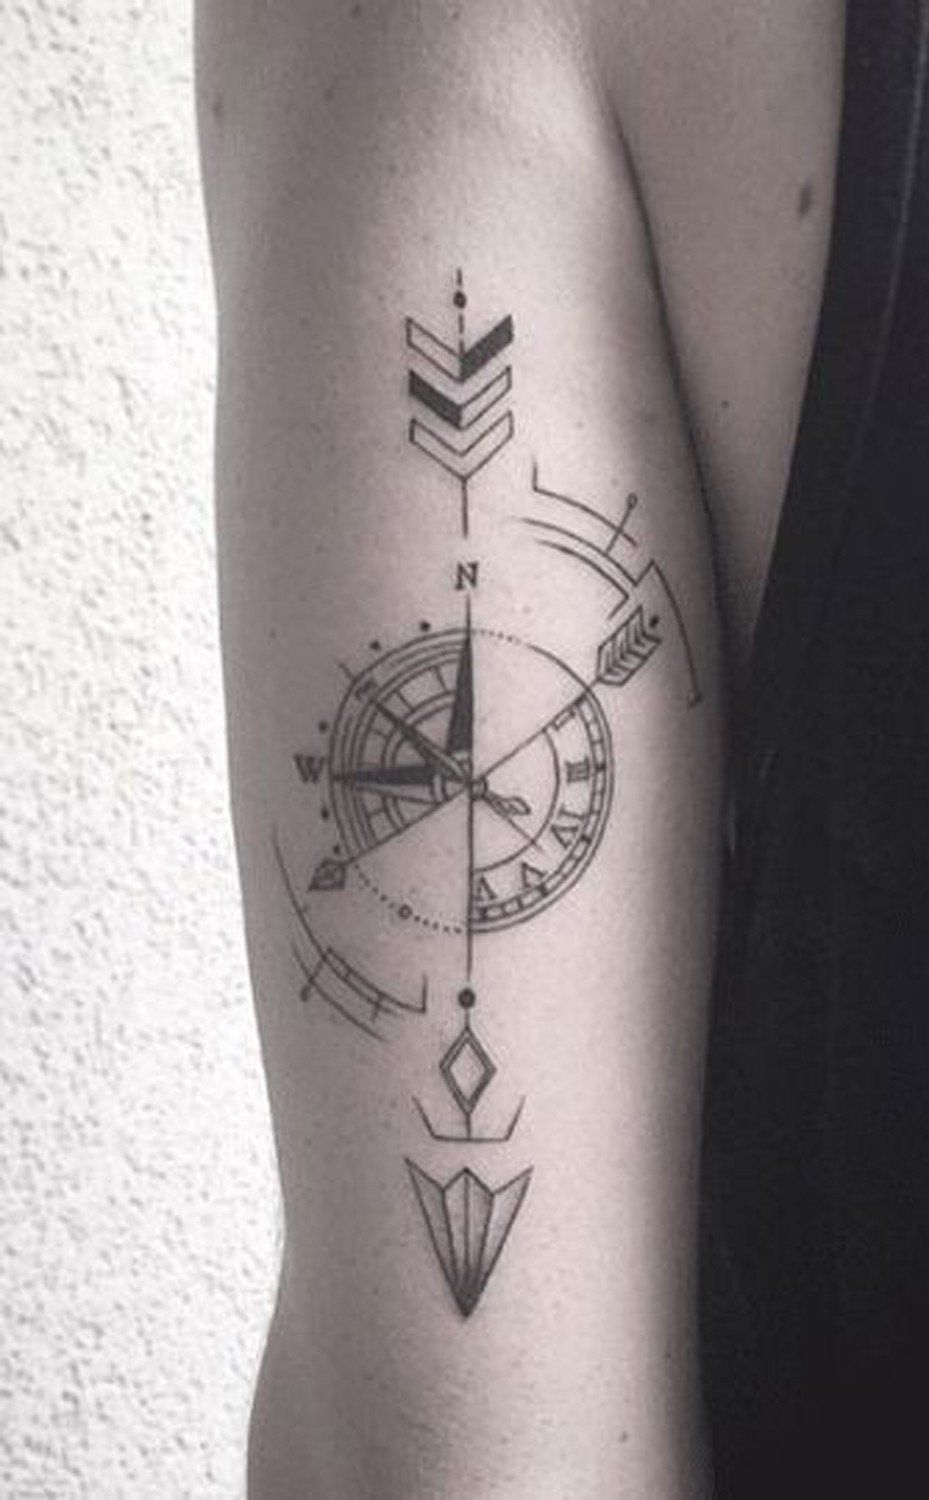 Compass Arrow Back Of Arm Forearm Tattoo Ideas At Mybodiart throughout dimensions 929 X 1500